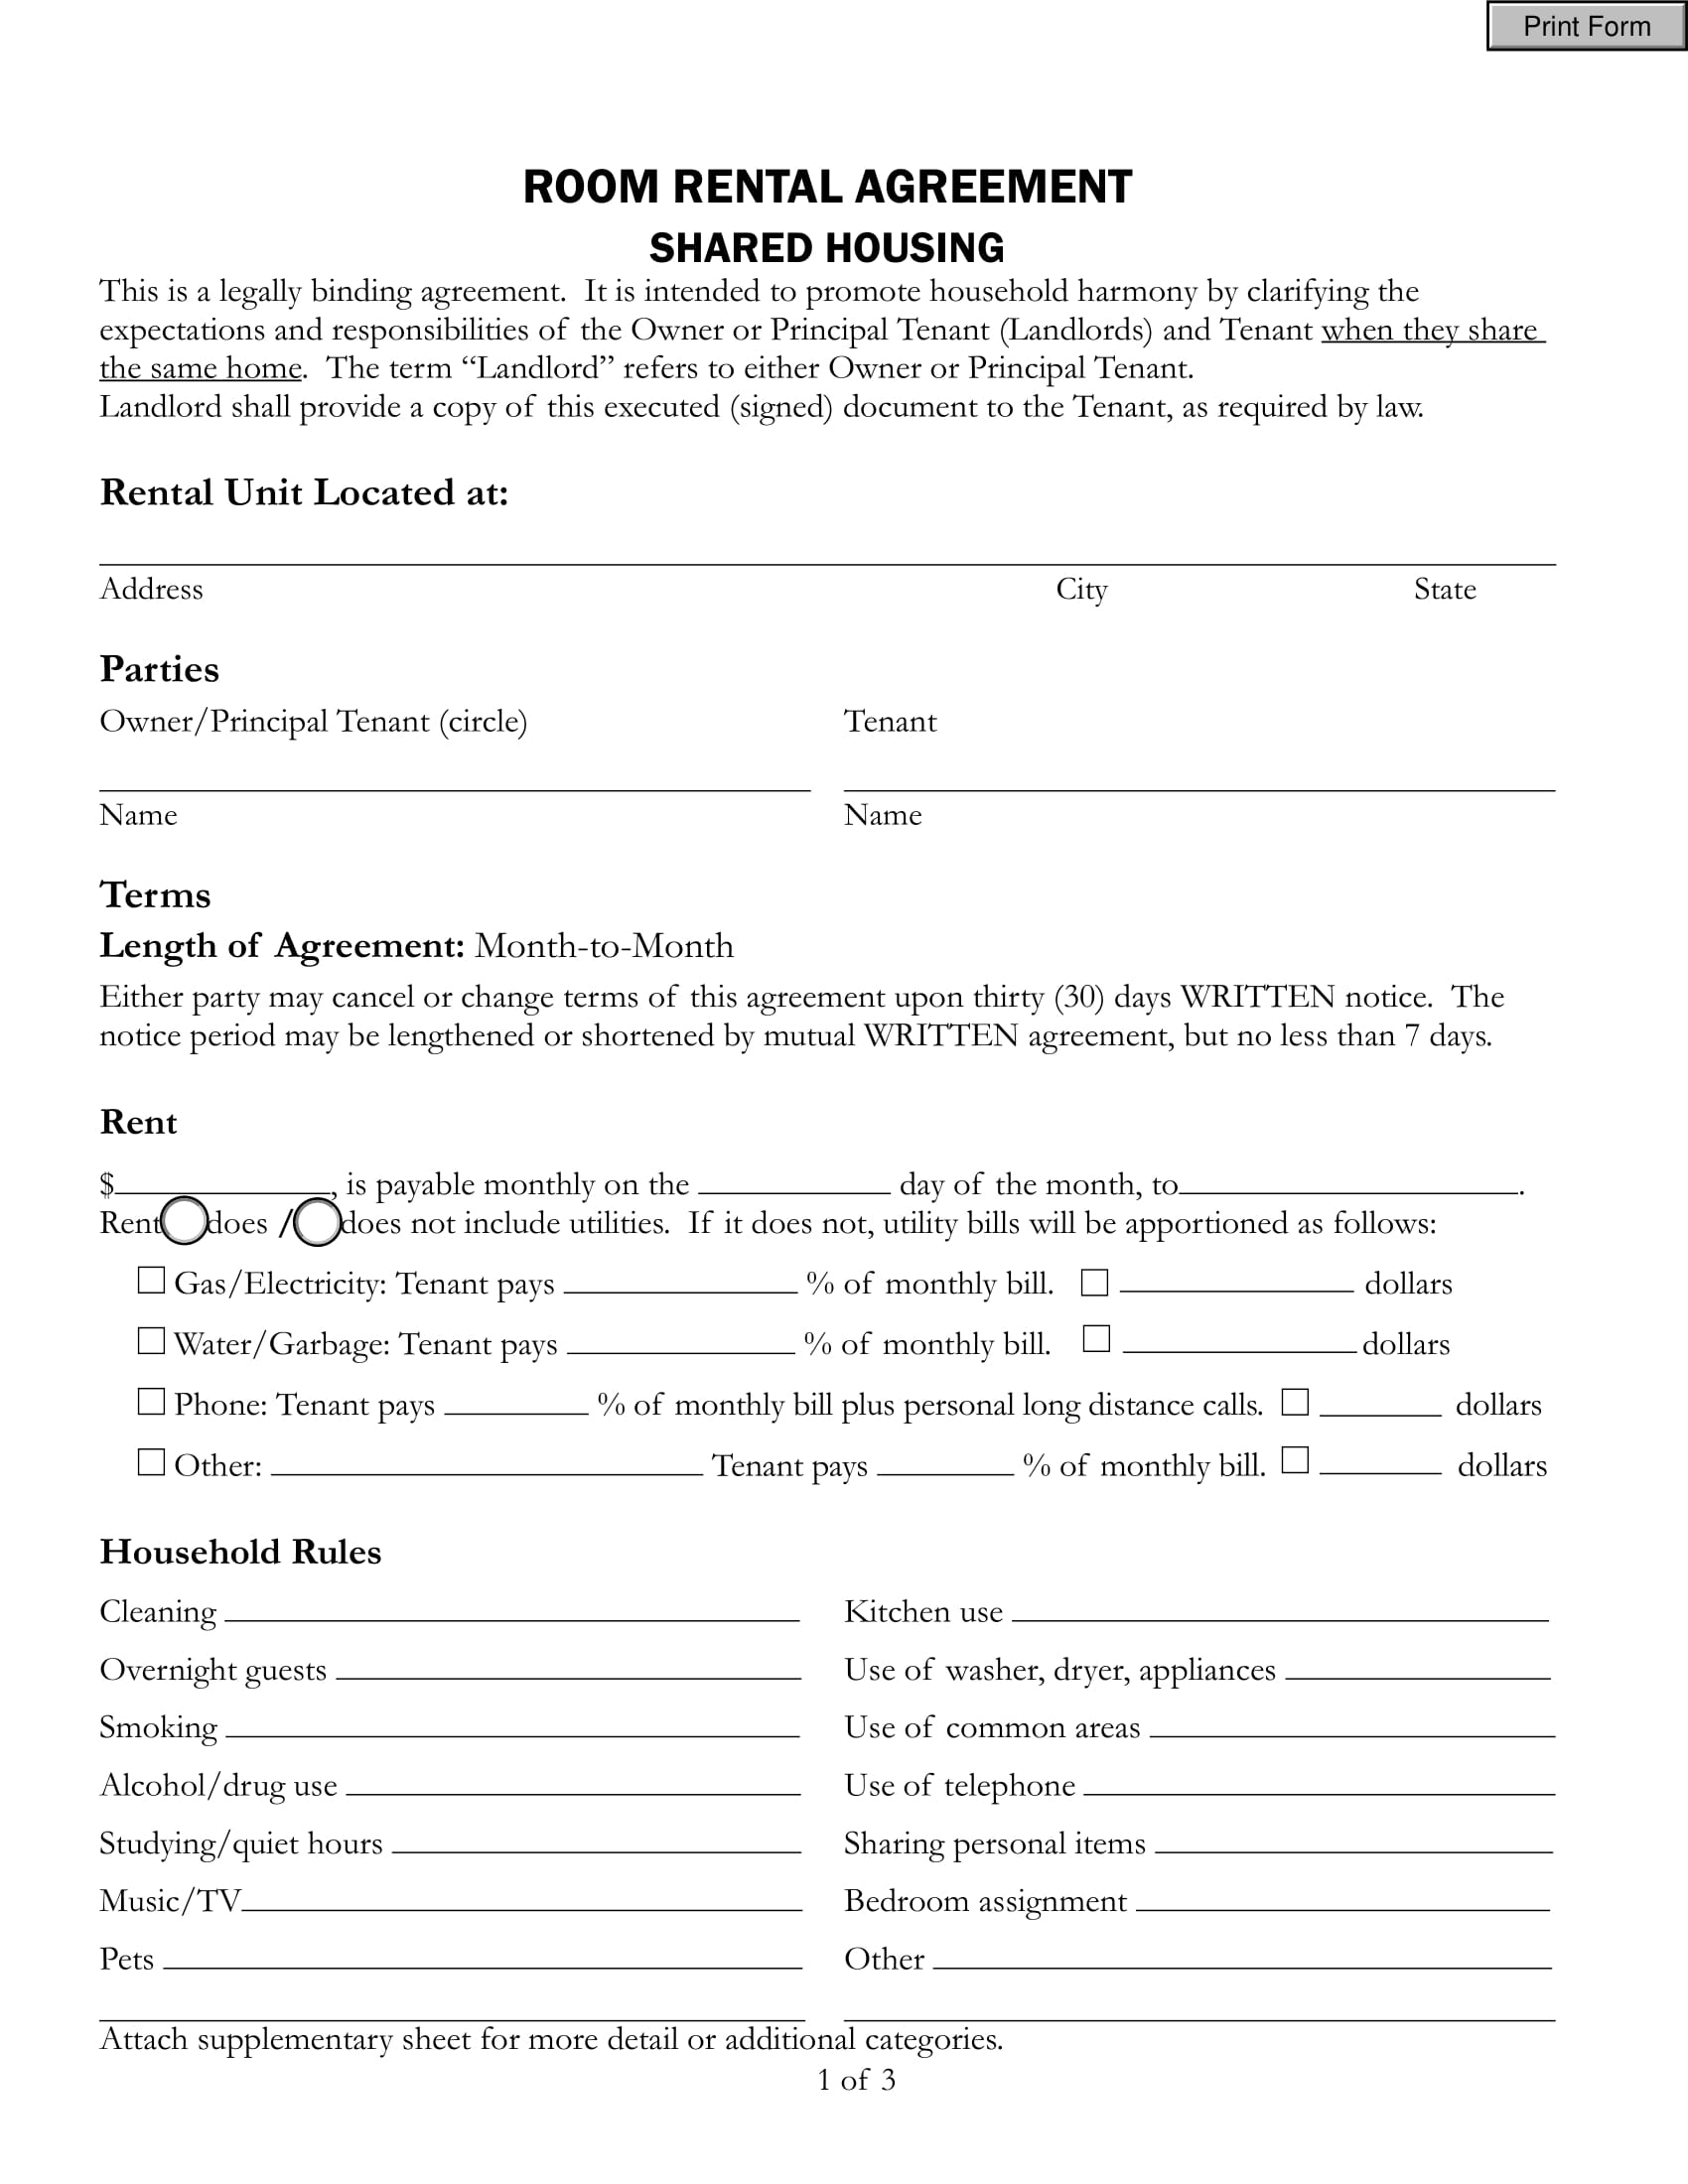 room rental agreement shared housing 9  Room Rental Agreement Examples - PDF